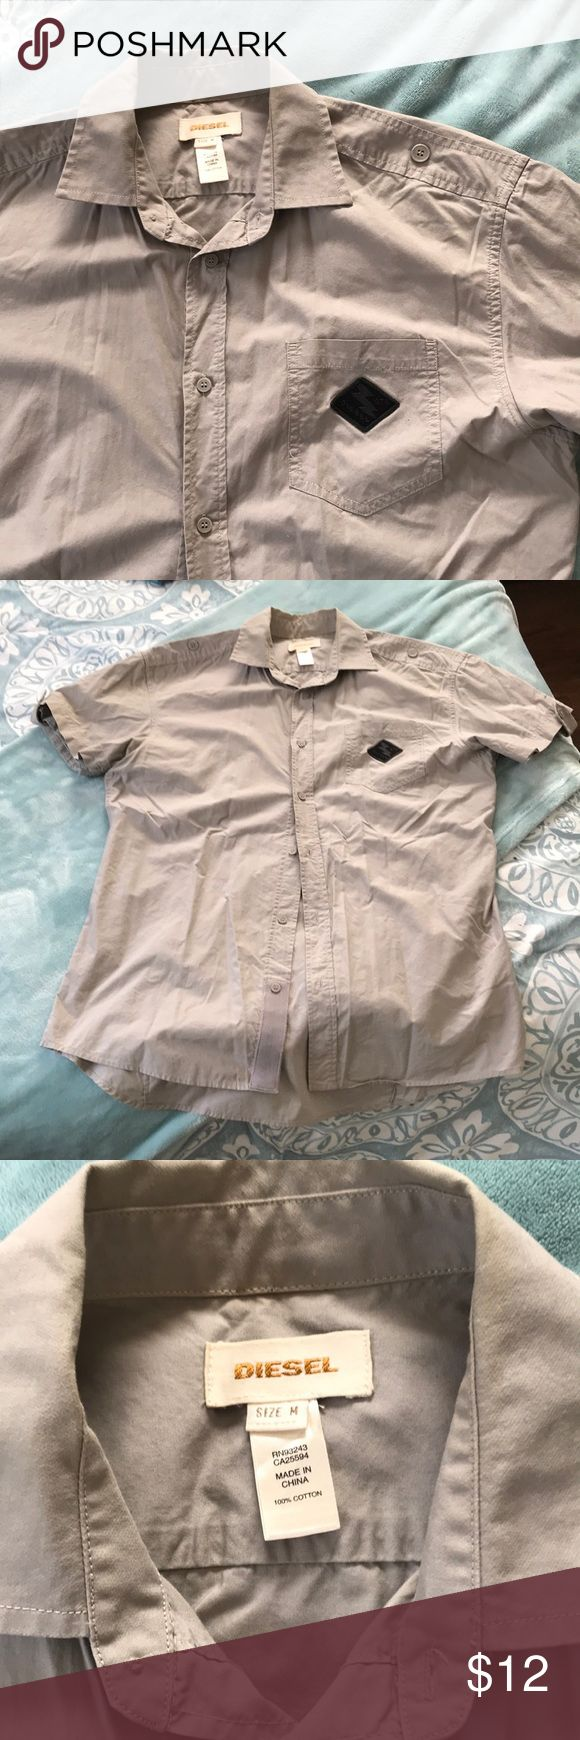 Diesel Button Down Shirt Preloved - Men's beige colored Diesel shirt, cleaning out BF's closet, great condition and nice details! Open to offers and bundle to save $$ 🤗! Diesel Shirts Casual Button Down Shirts